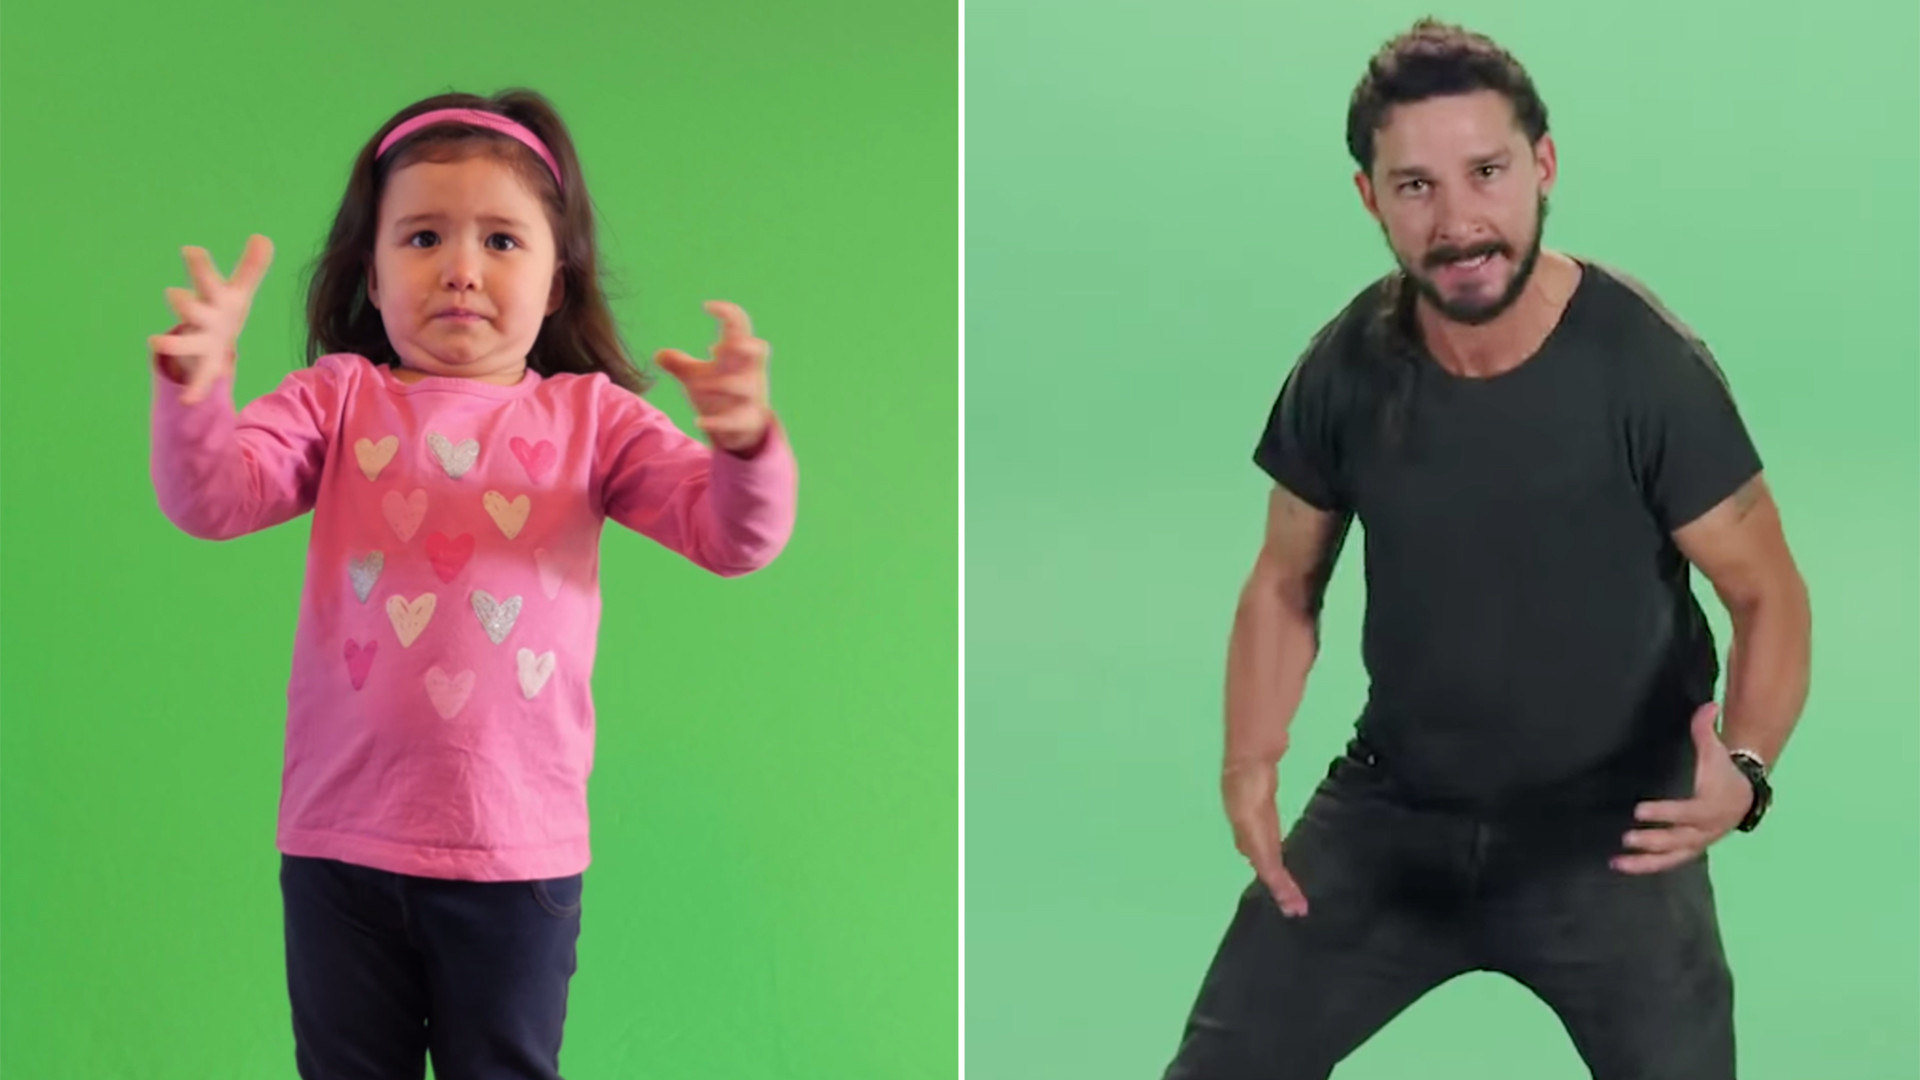 3-year-old spoofs Shia LaBeouf's motivational 'Just do it' speech –  TODAY.com